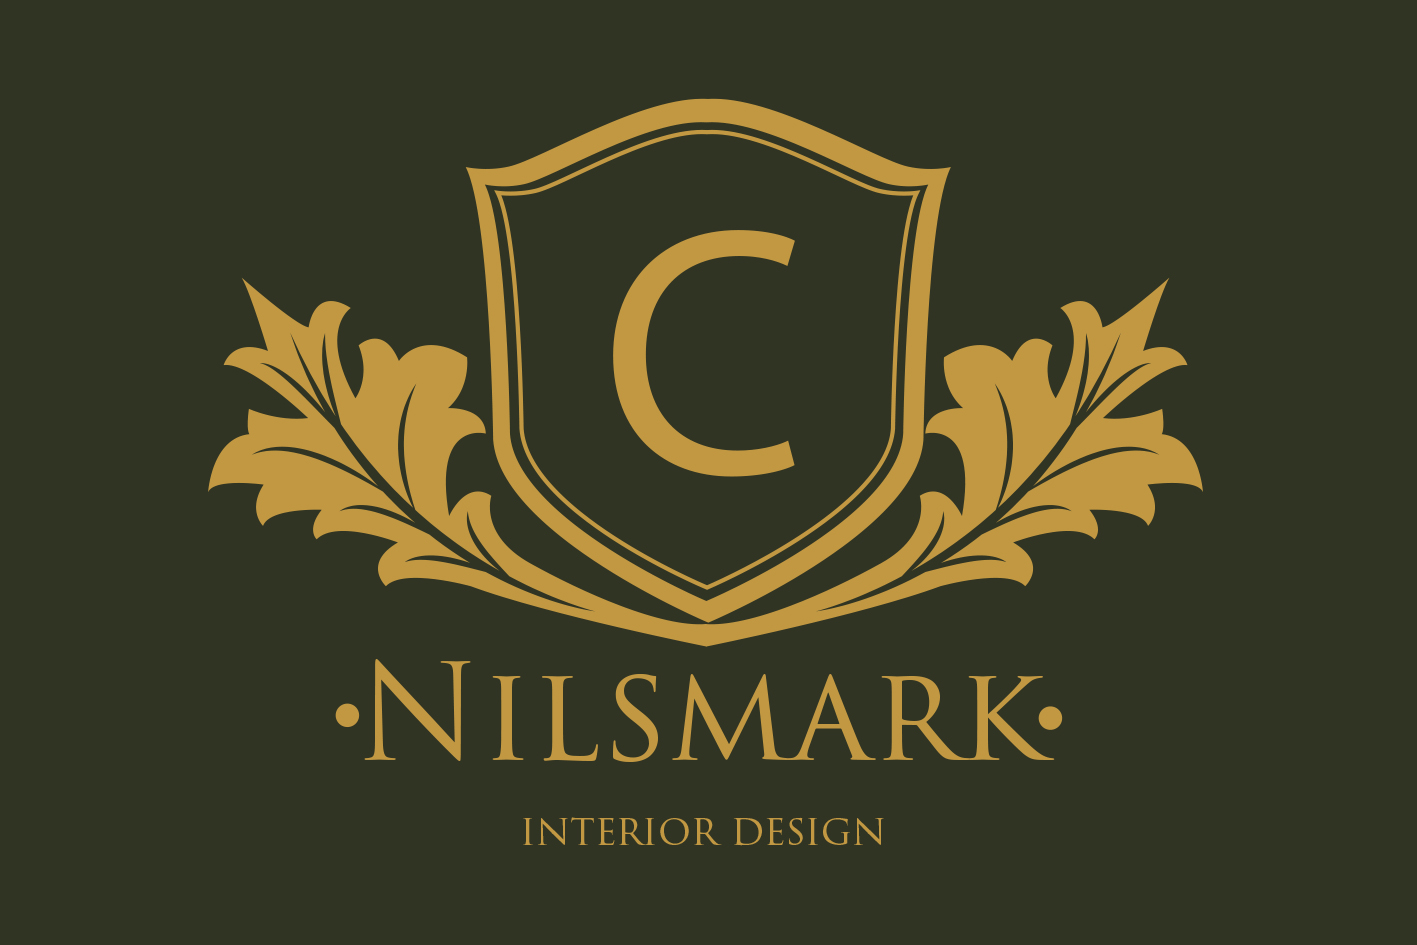 Nilsmark Interior Design